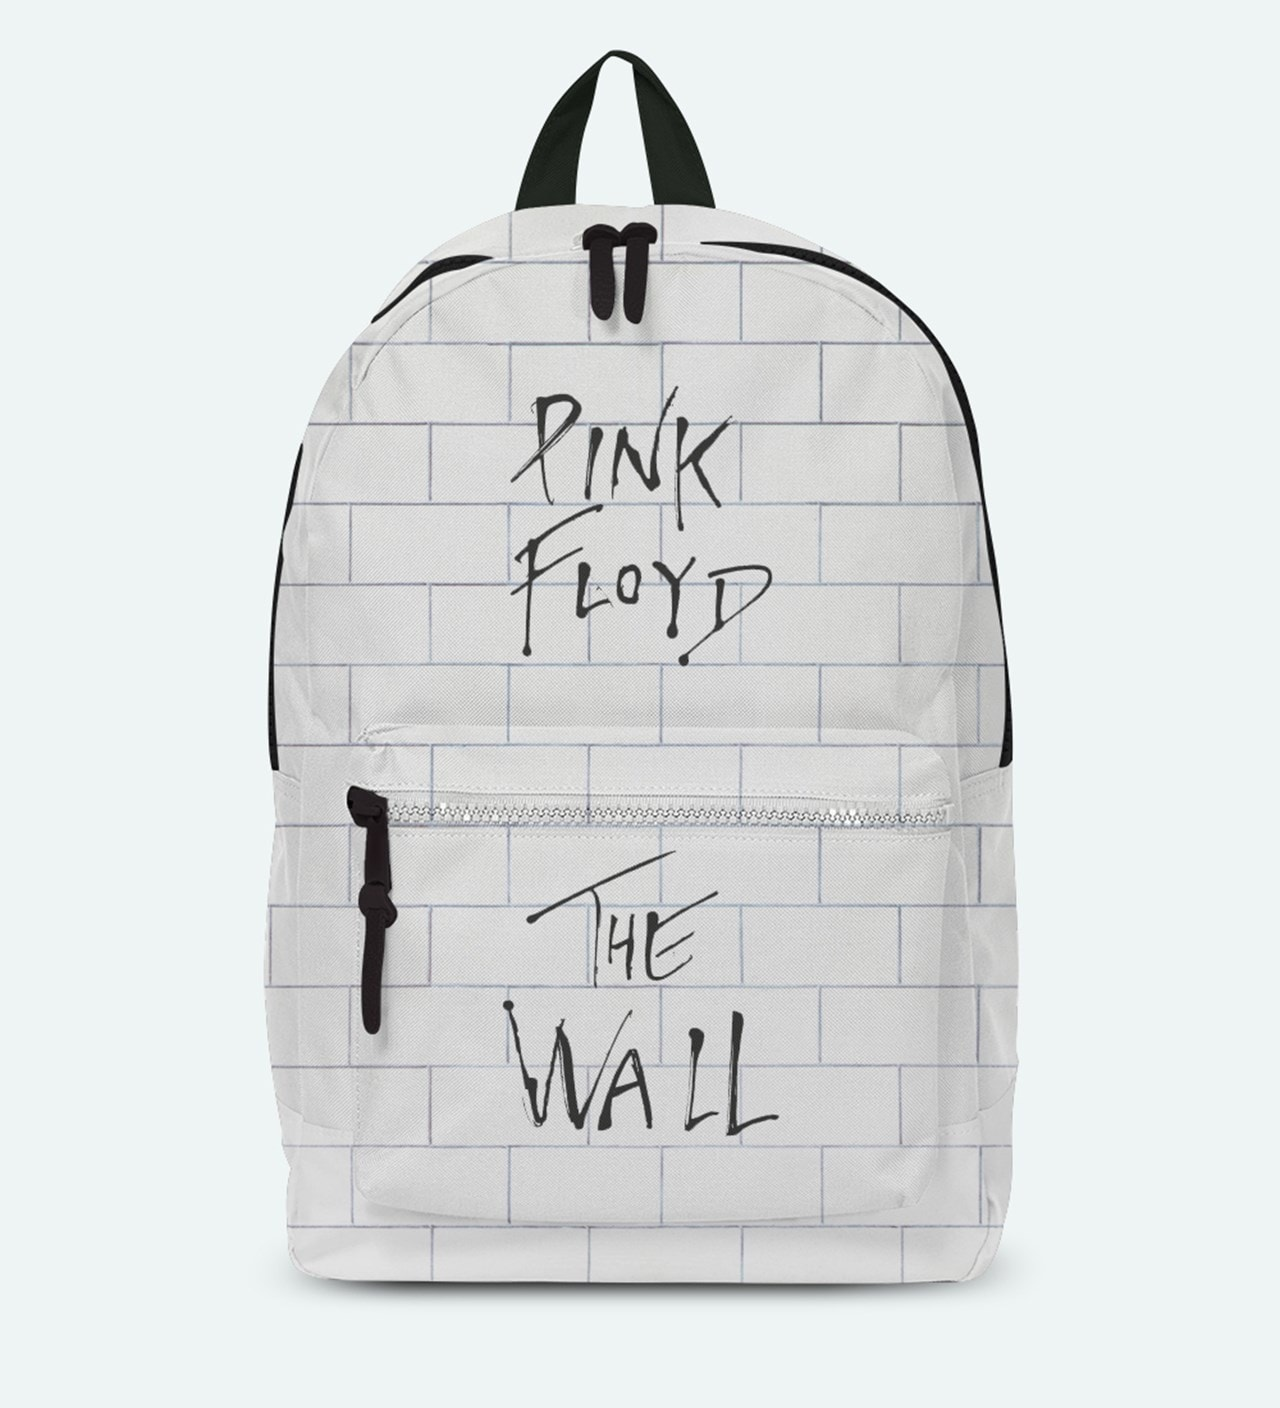 Pink Floyd: The Wall Backpack - 1